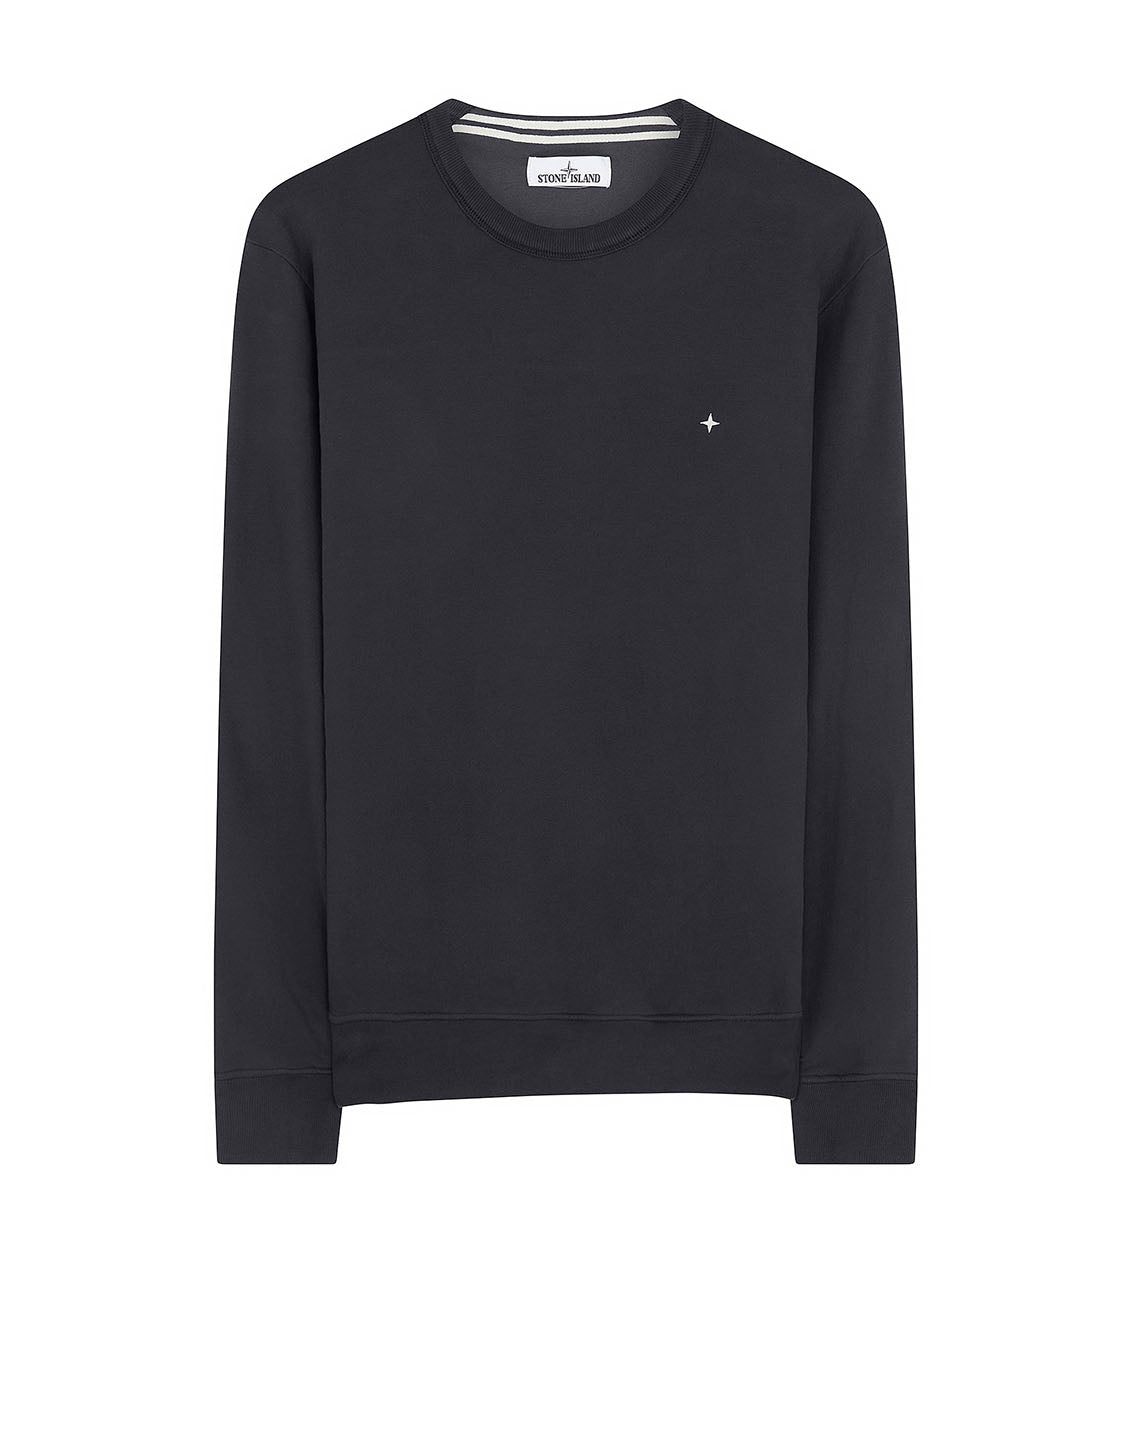 60820 Crewneck sweatshirt in Navy